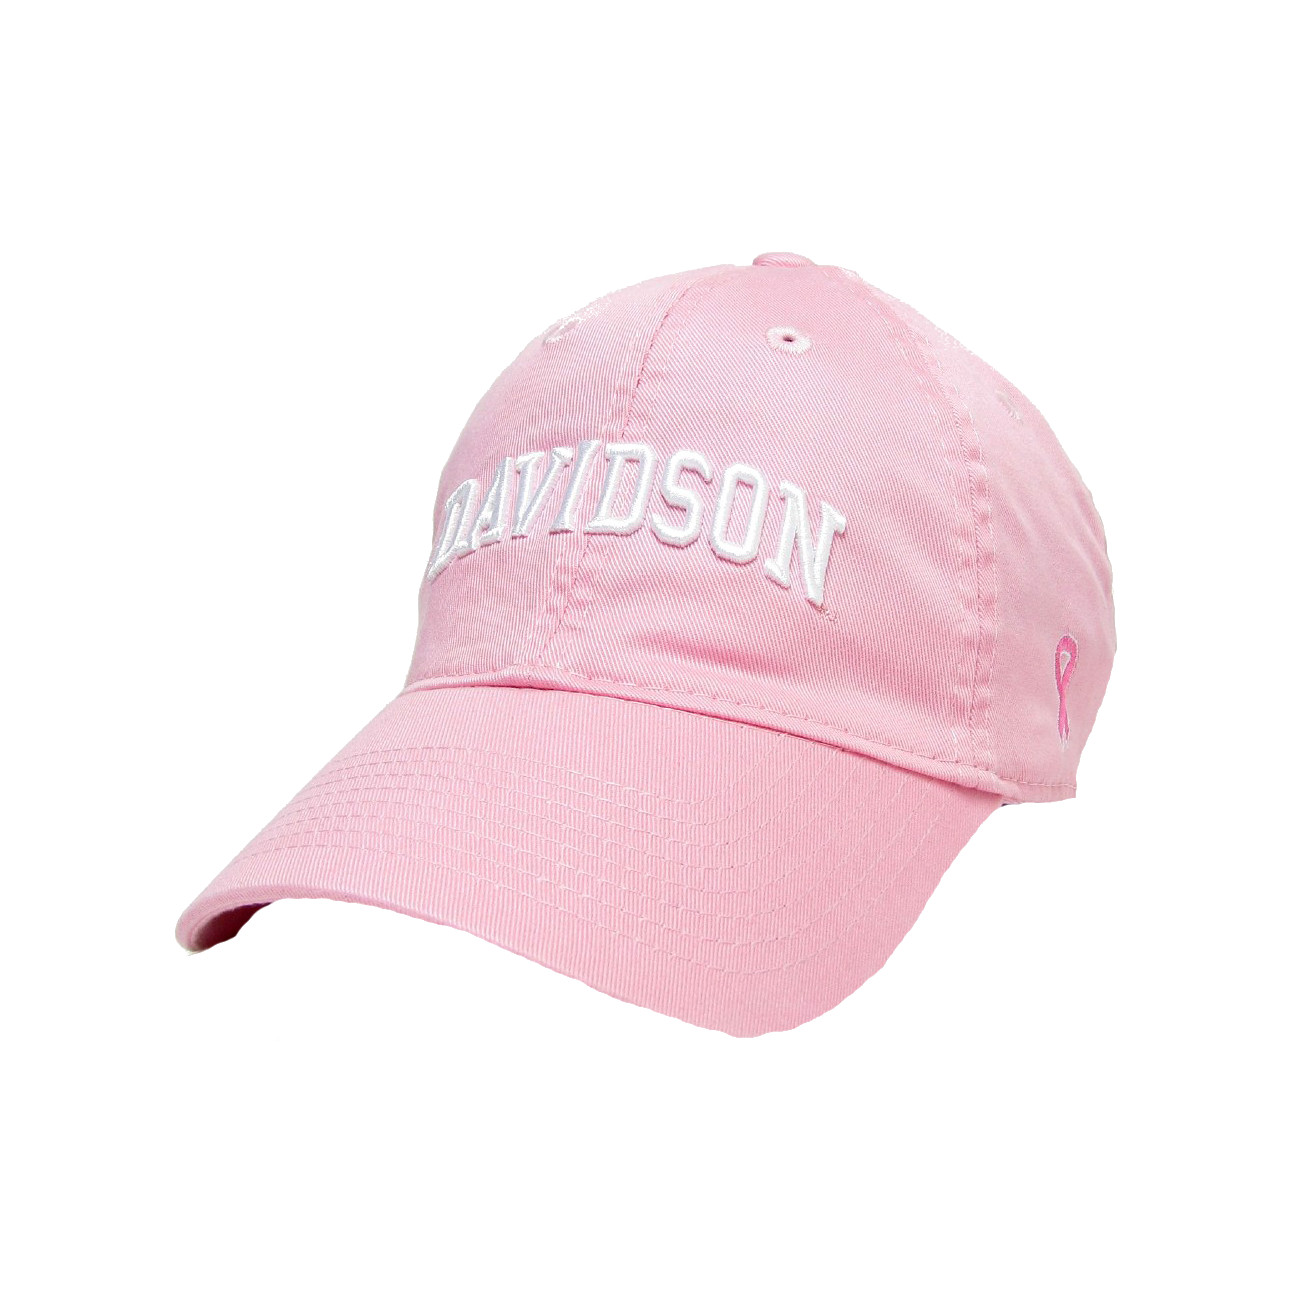 Image For Women's Hat - Pink - davidson Arched